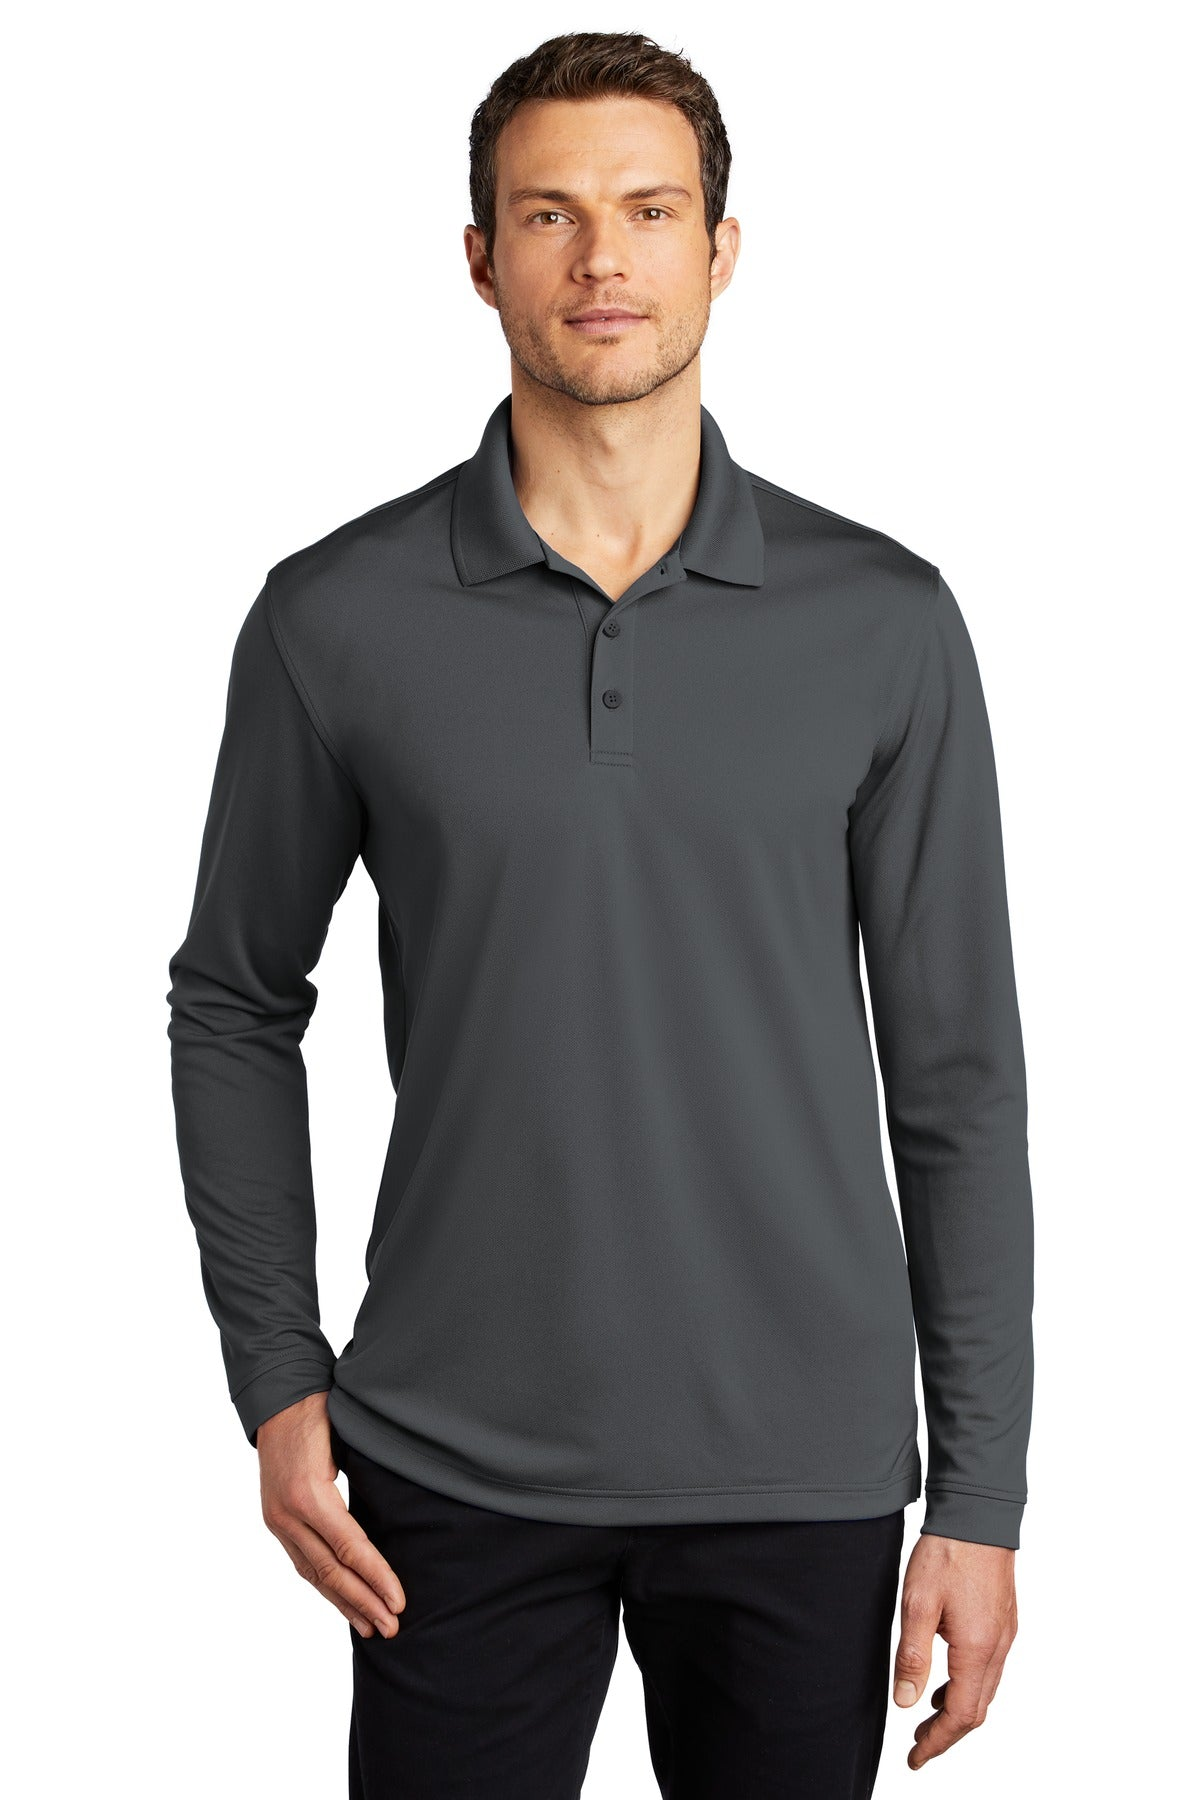 Turquoise Port Authority Heavyweight Cotton Pique Polo.